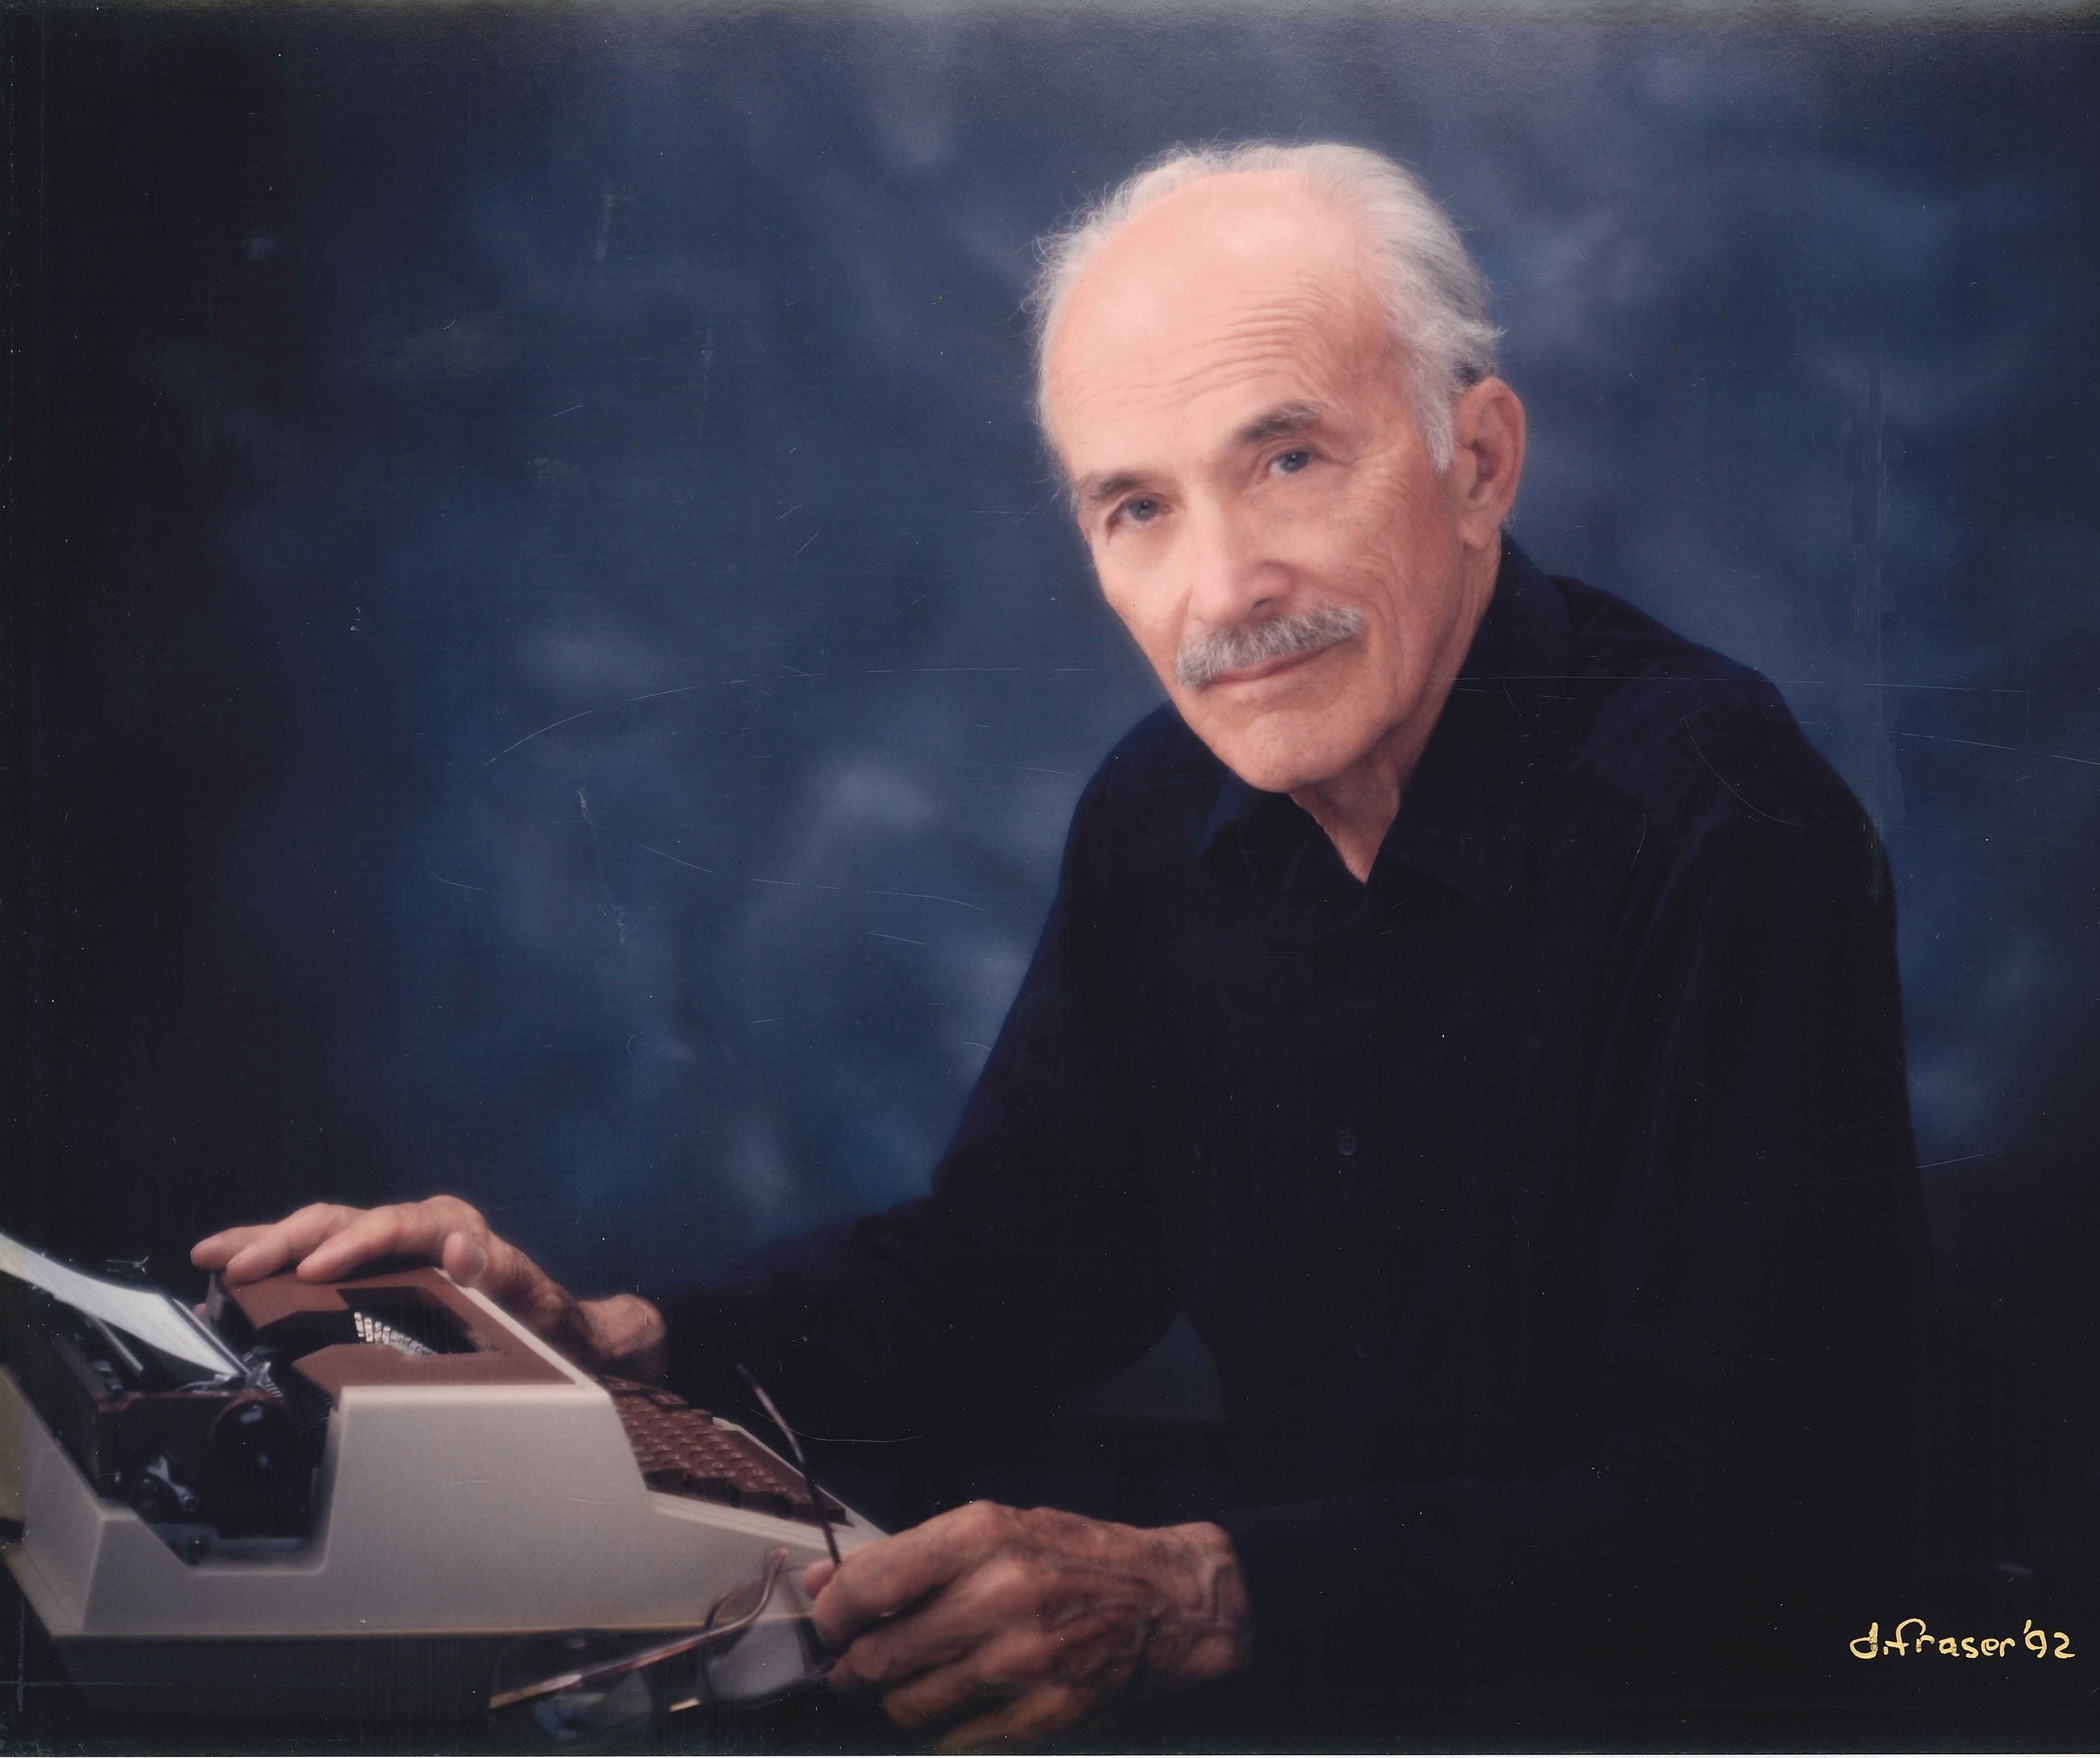 Arthur Schroeder Photo 11-16-1992